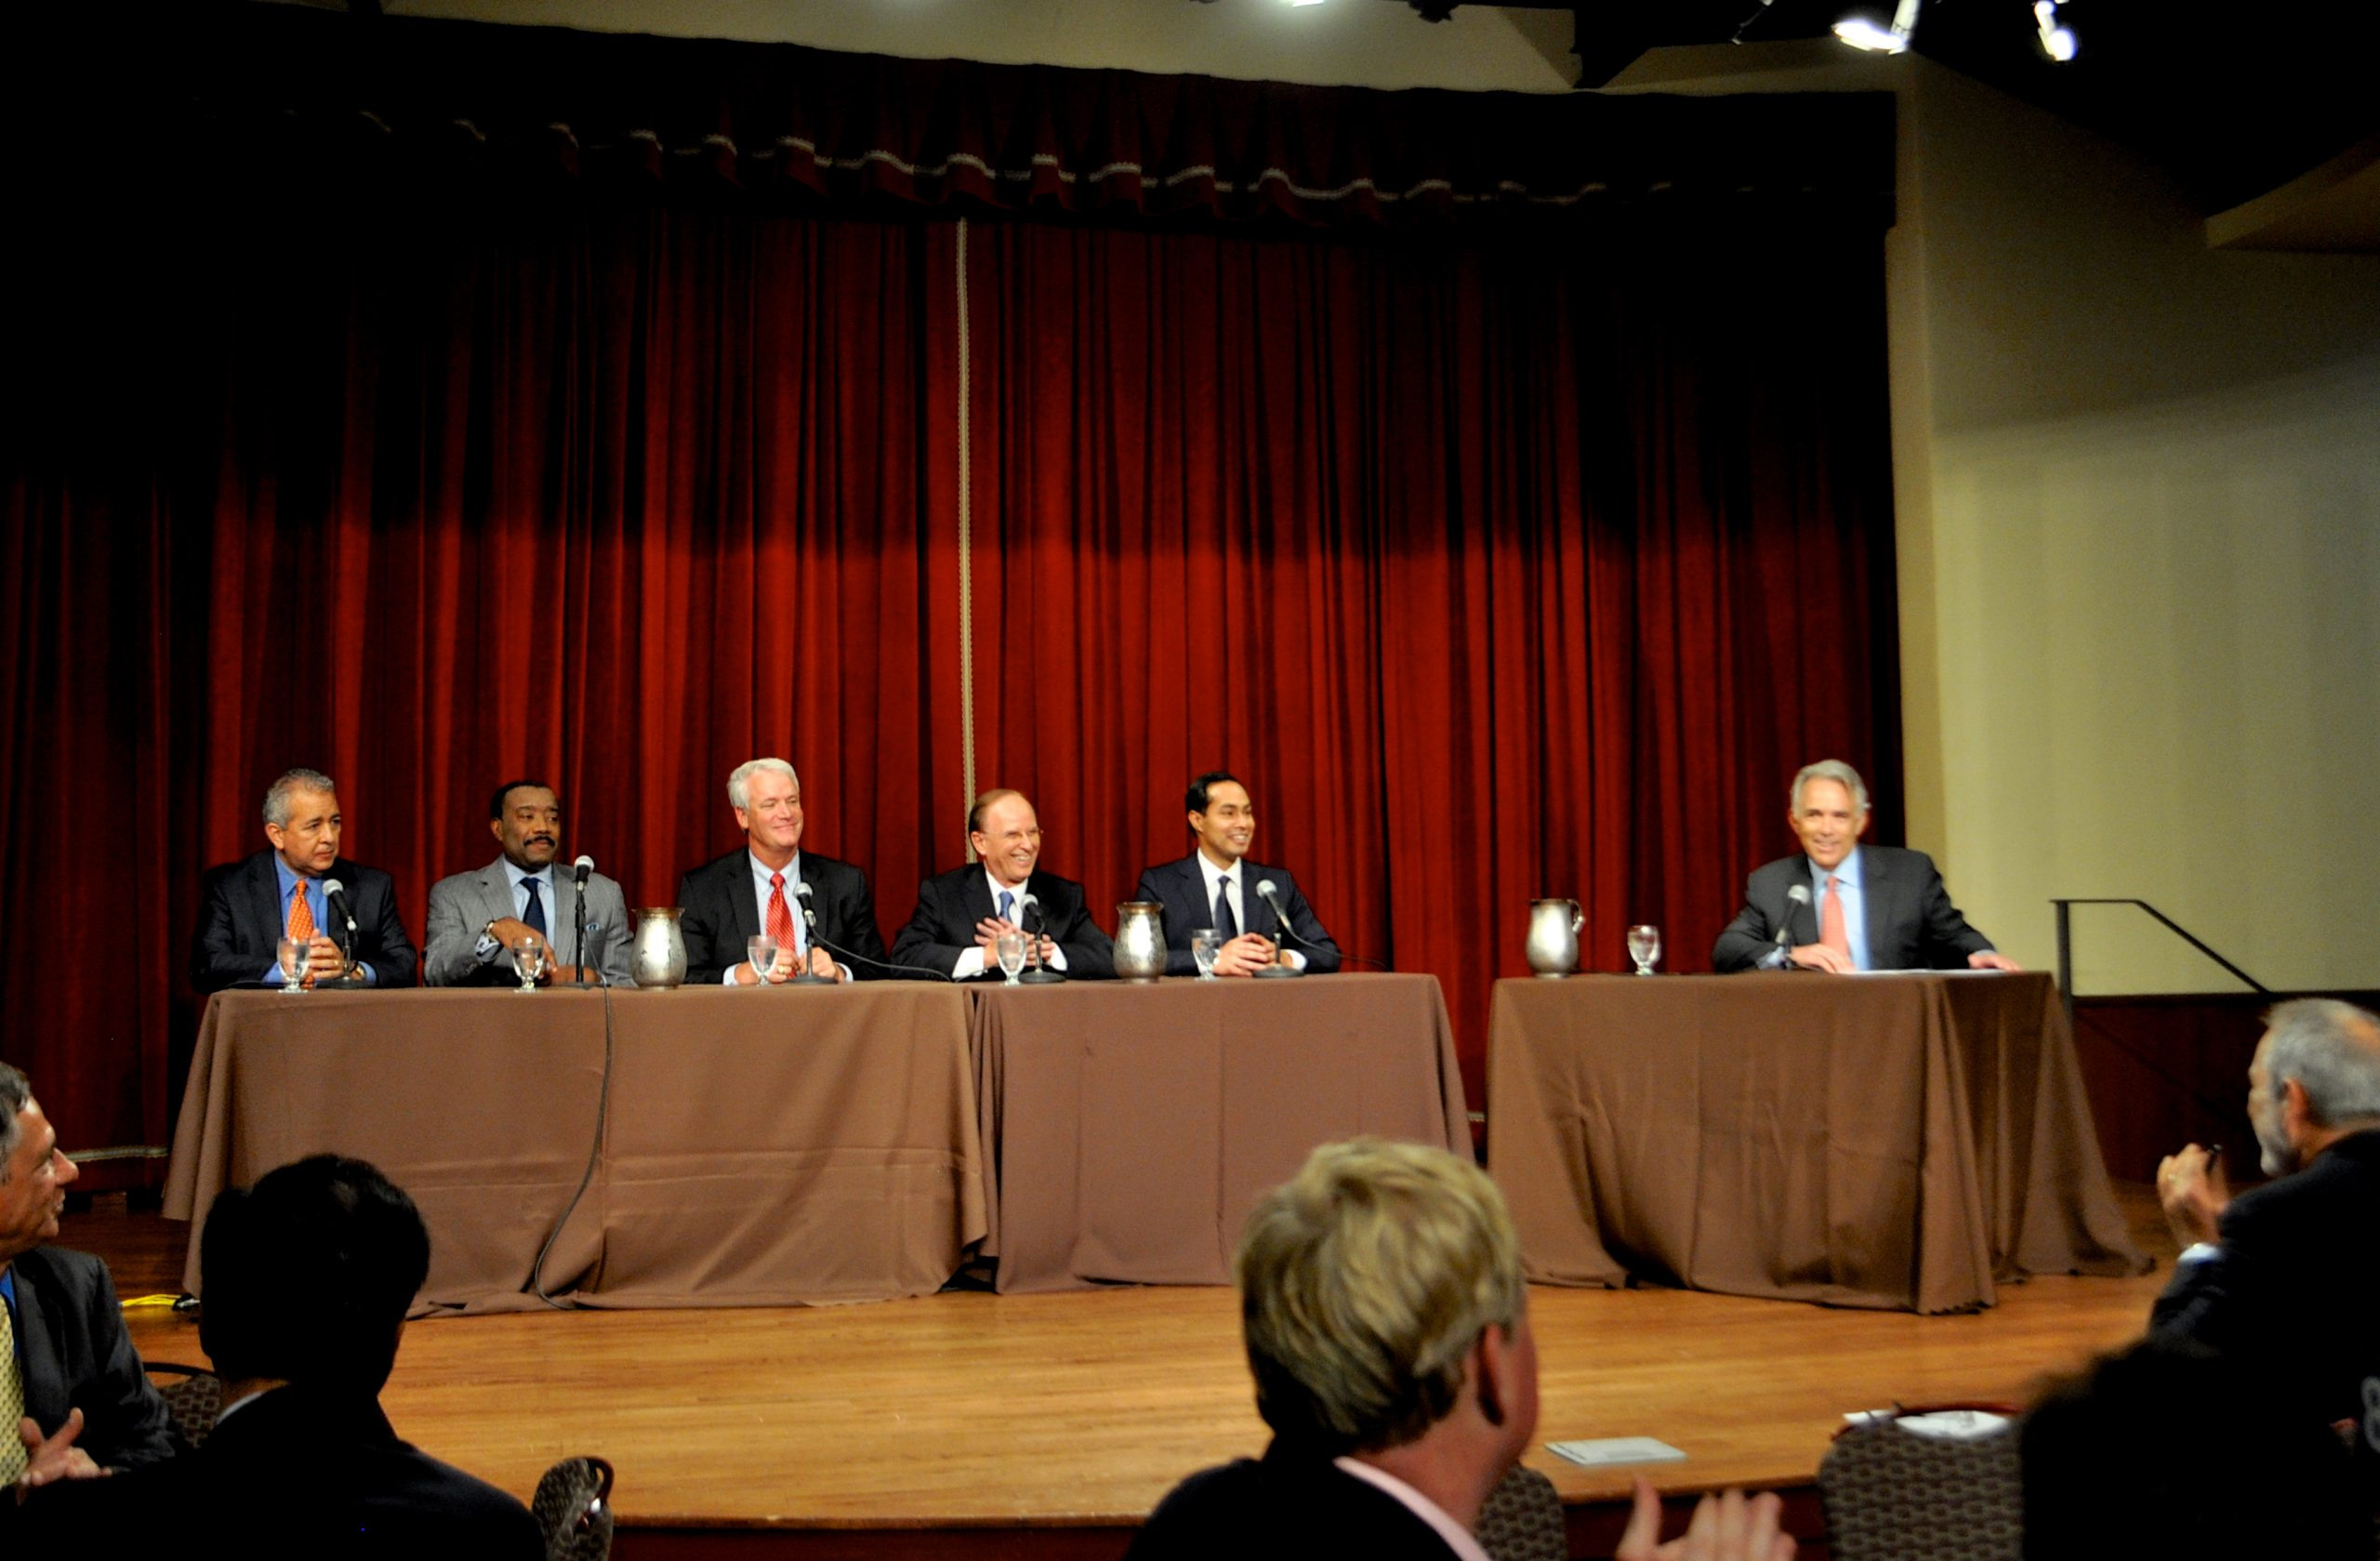 SAWS President and CEO Robert Puente, CPS President and CEO Doyle Beneby, State Rep. Lyle Larson, Bexar County Judge Nelson Wolff, Mayor Julián Castro and moderator Robert Rivard.